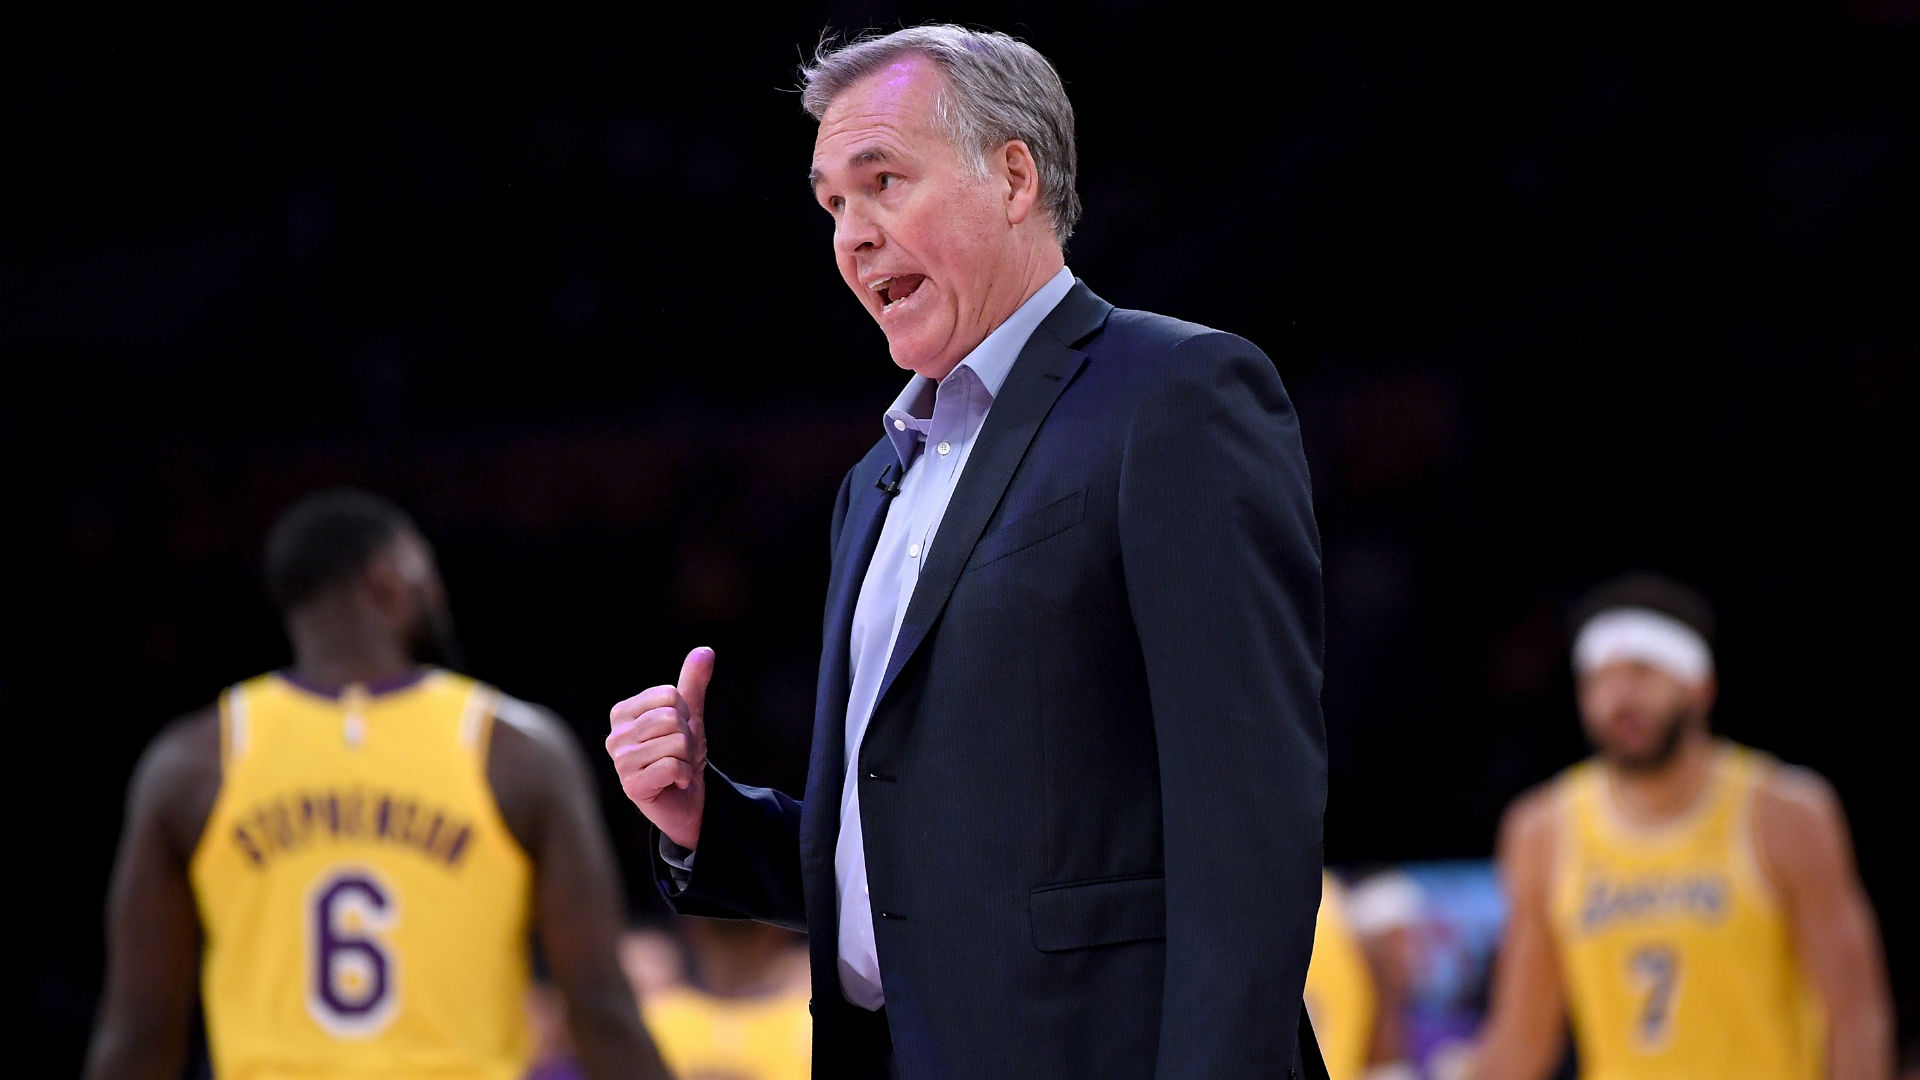 Everybody's got something to say - D'Antoni unconcerned by Curry comments